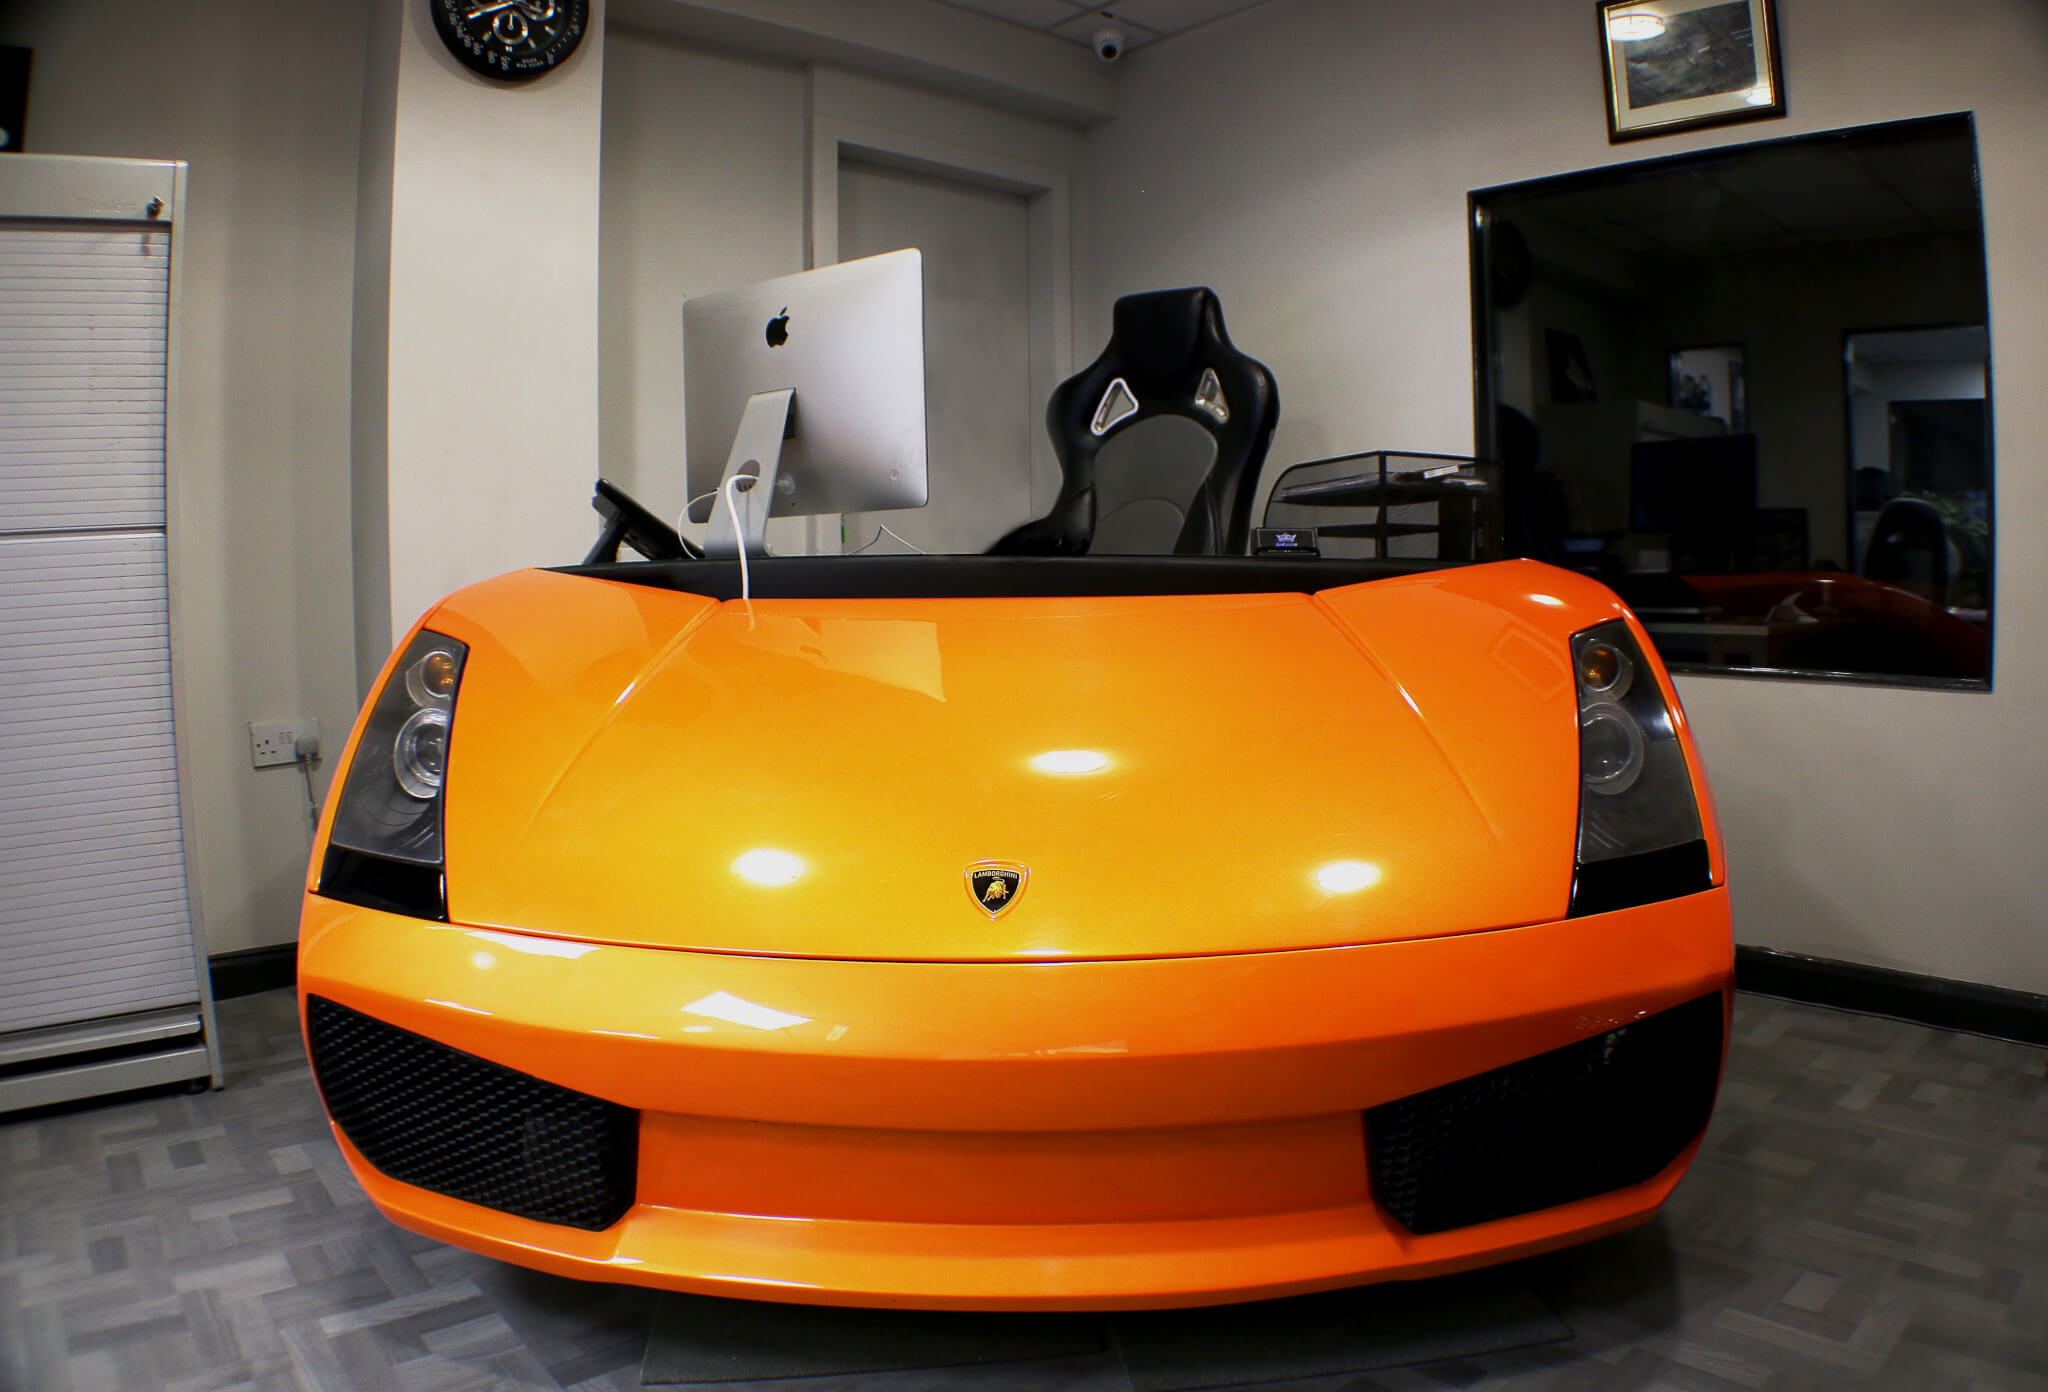 http://www.enkahnz.co.uk/wp-content/uploads/2019/07/nav-lambo-desk.jpg